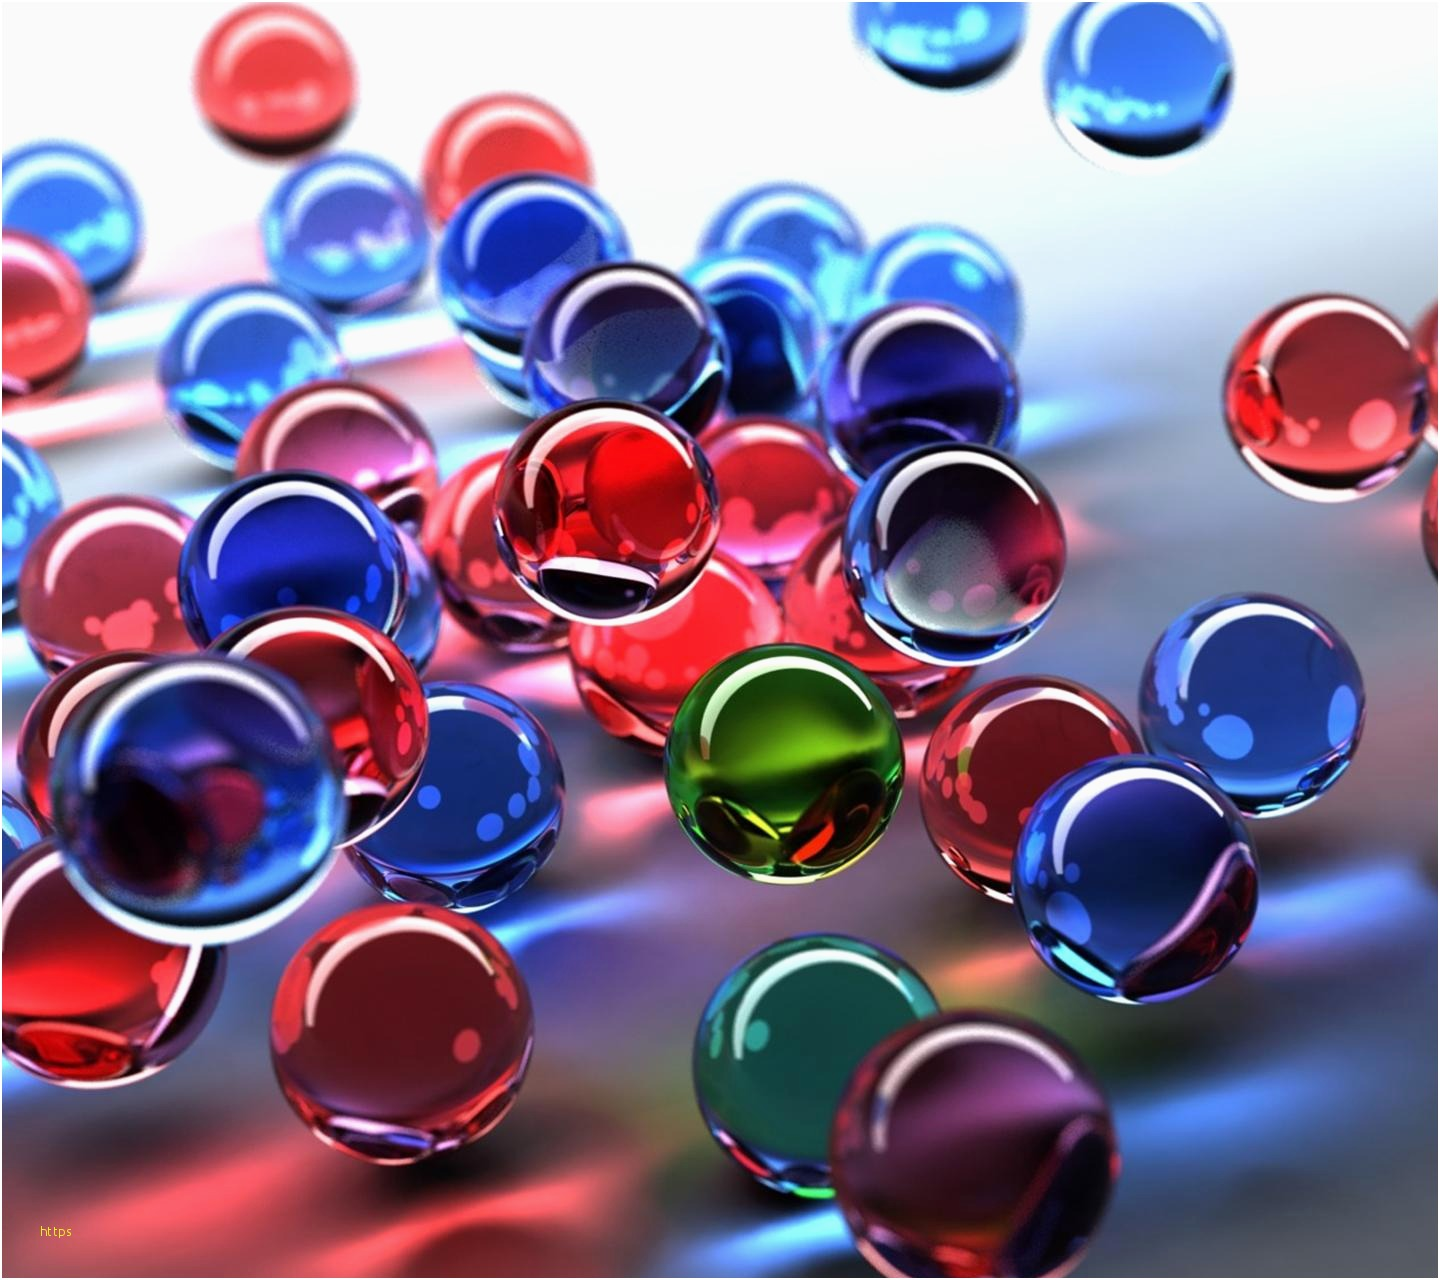 Bubble Wallpaper Unique 40 Live Wallpapers In 4k Full Best